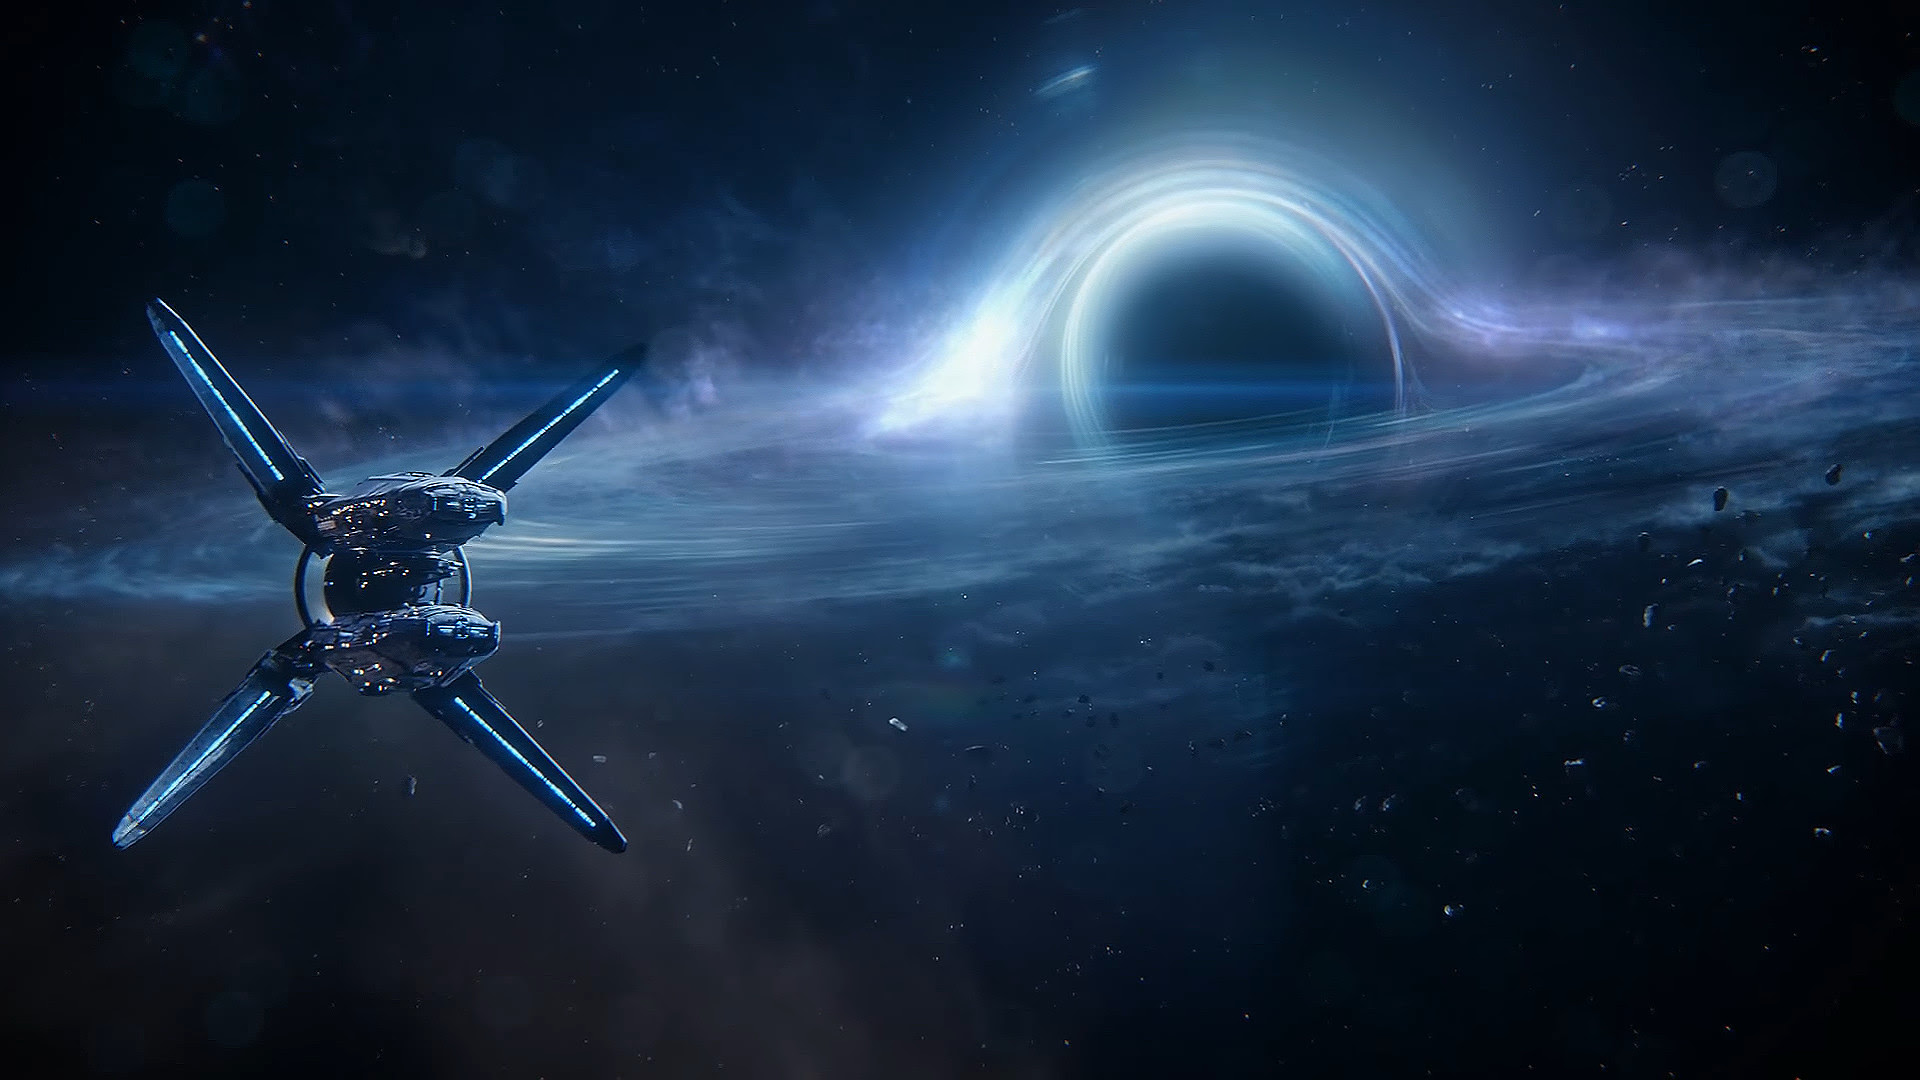 Mass Effect Space Wallpaper 74 Images